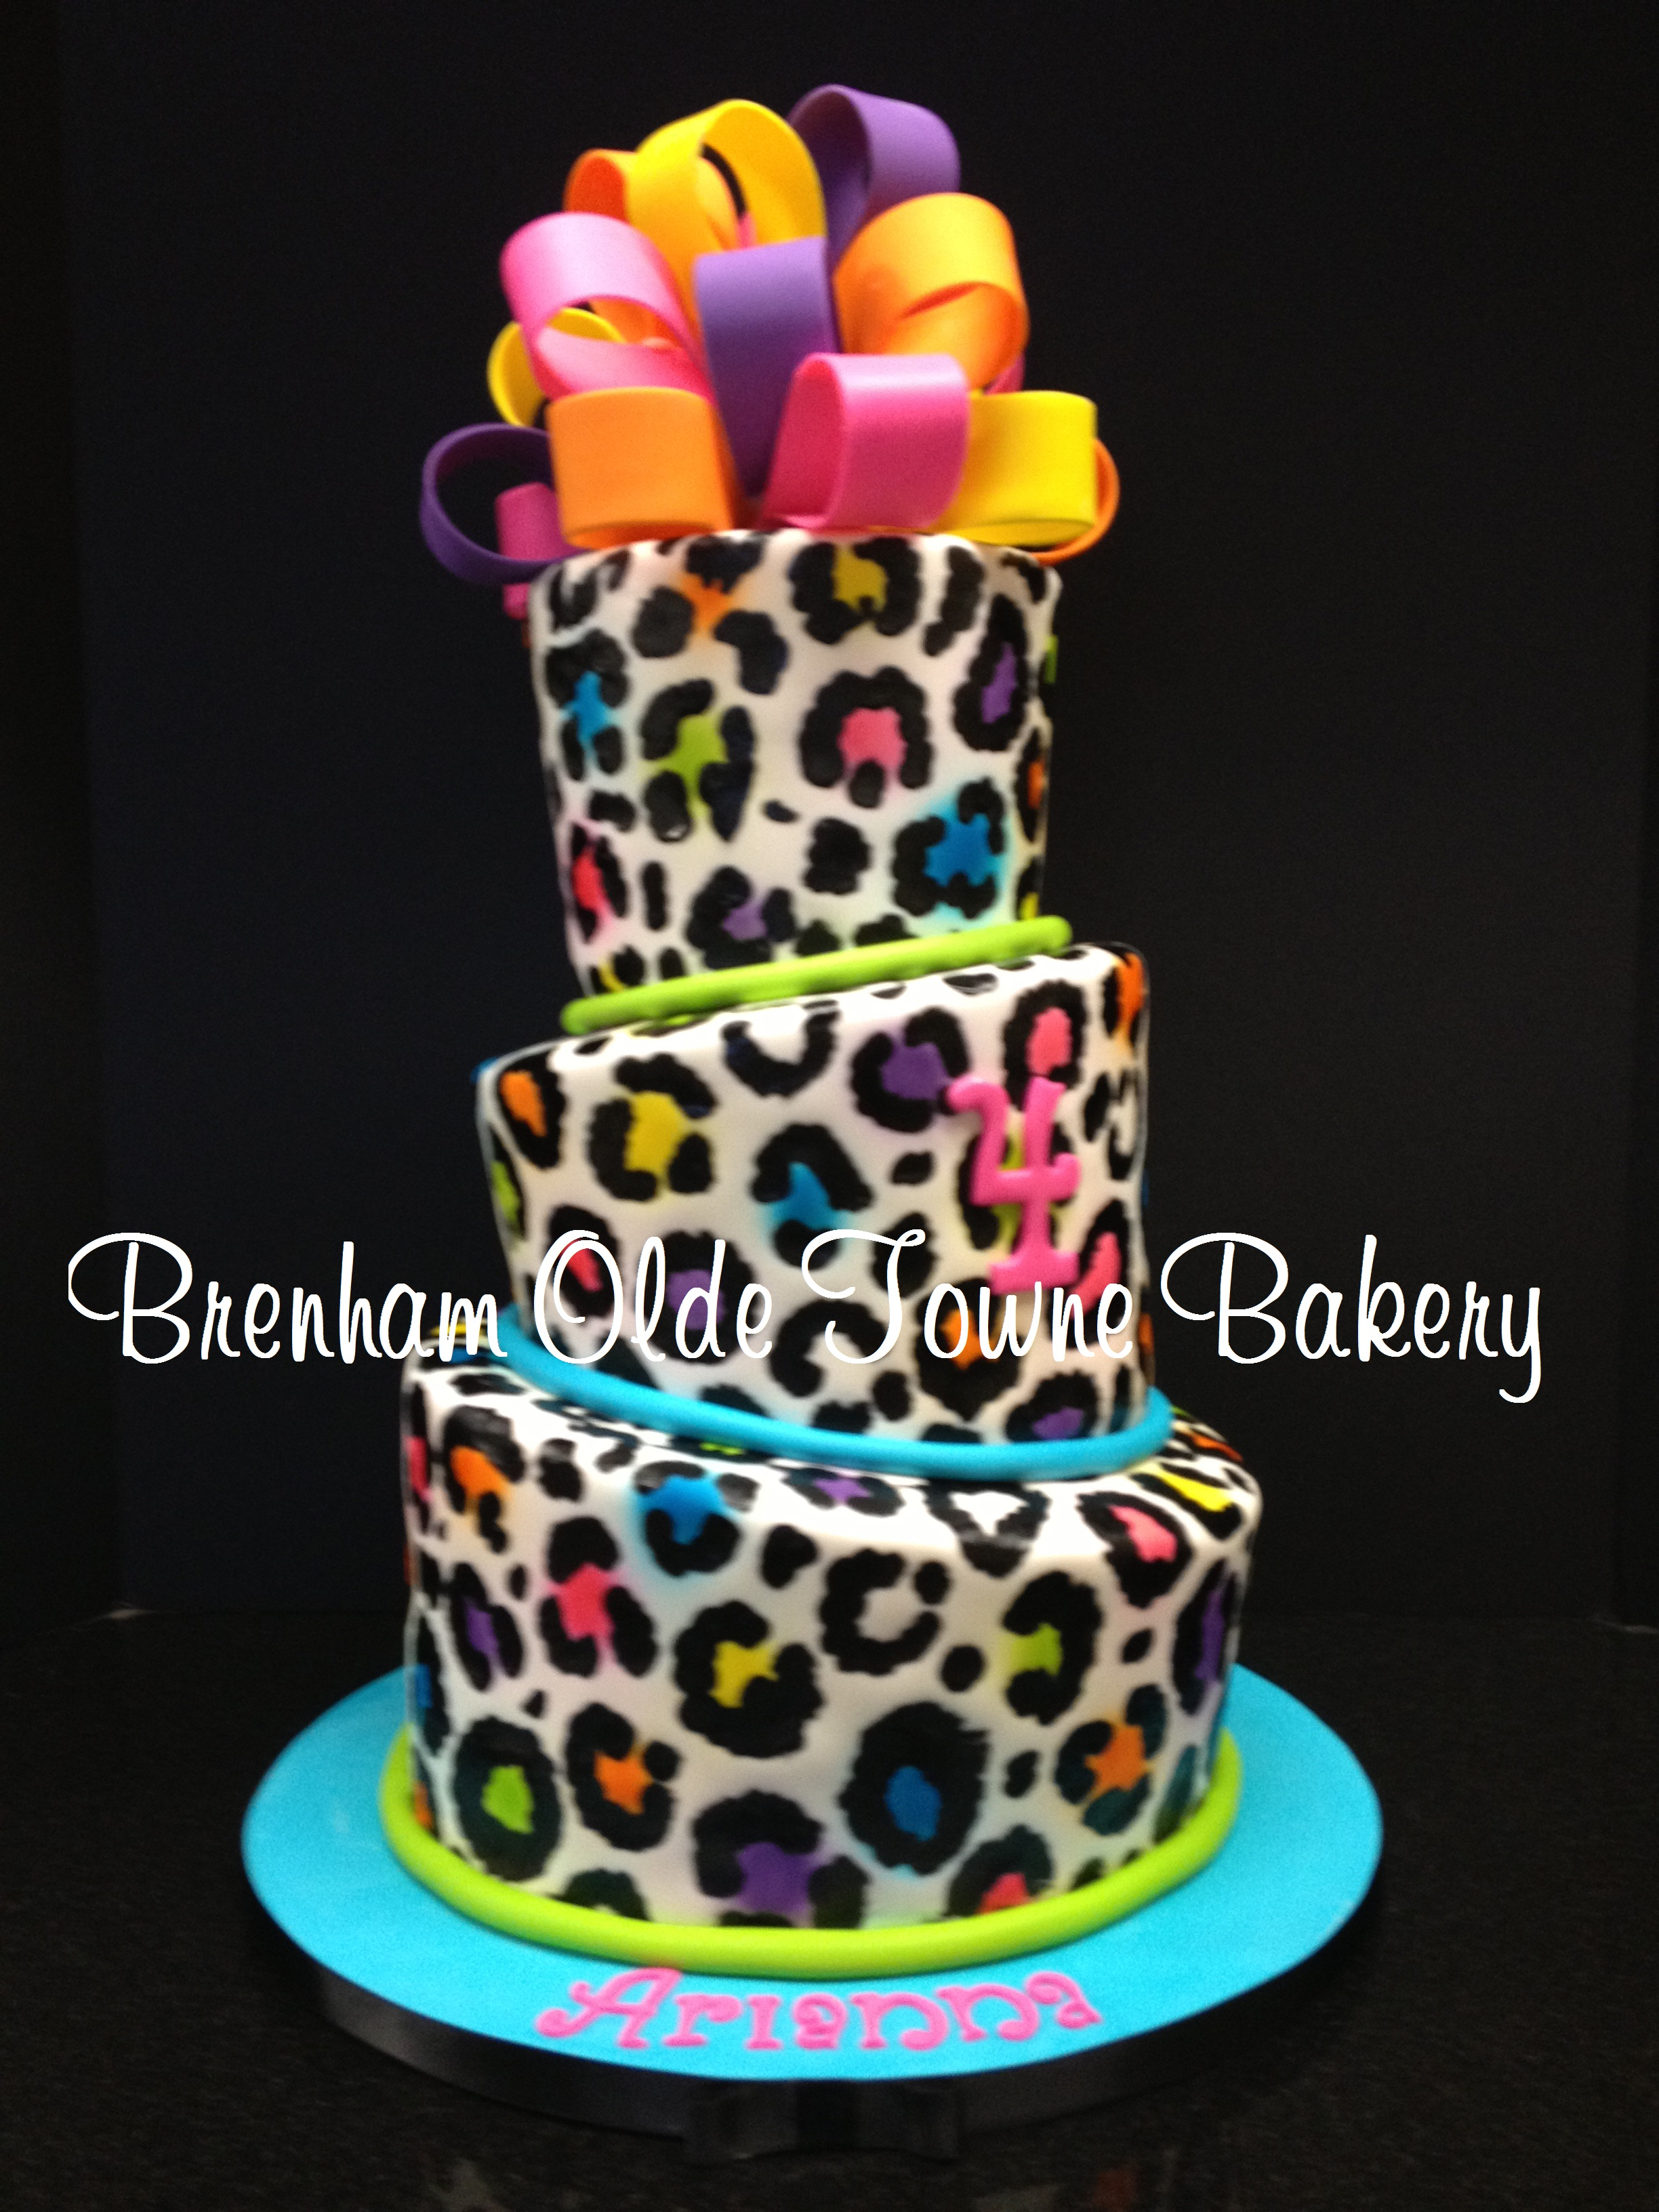 Print Pictures For Cake : topsy turvy neon leopard print birthday cake Brenham ...